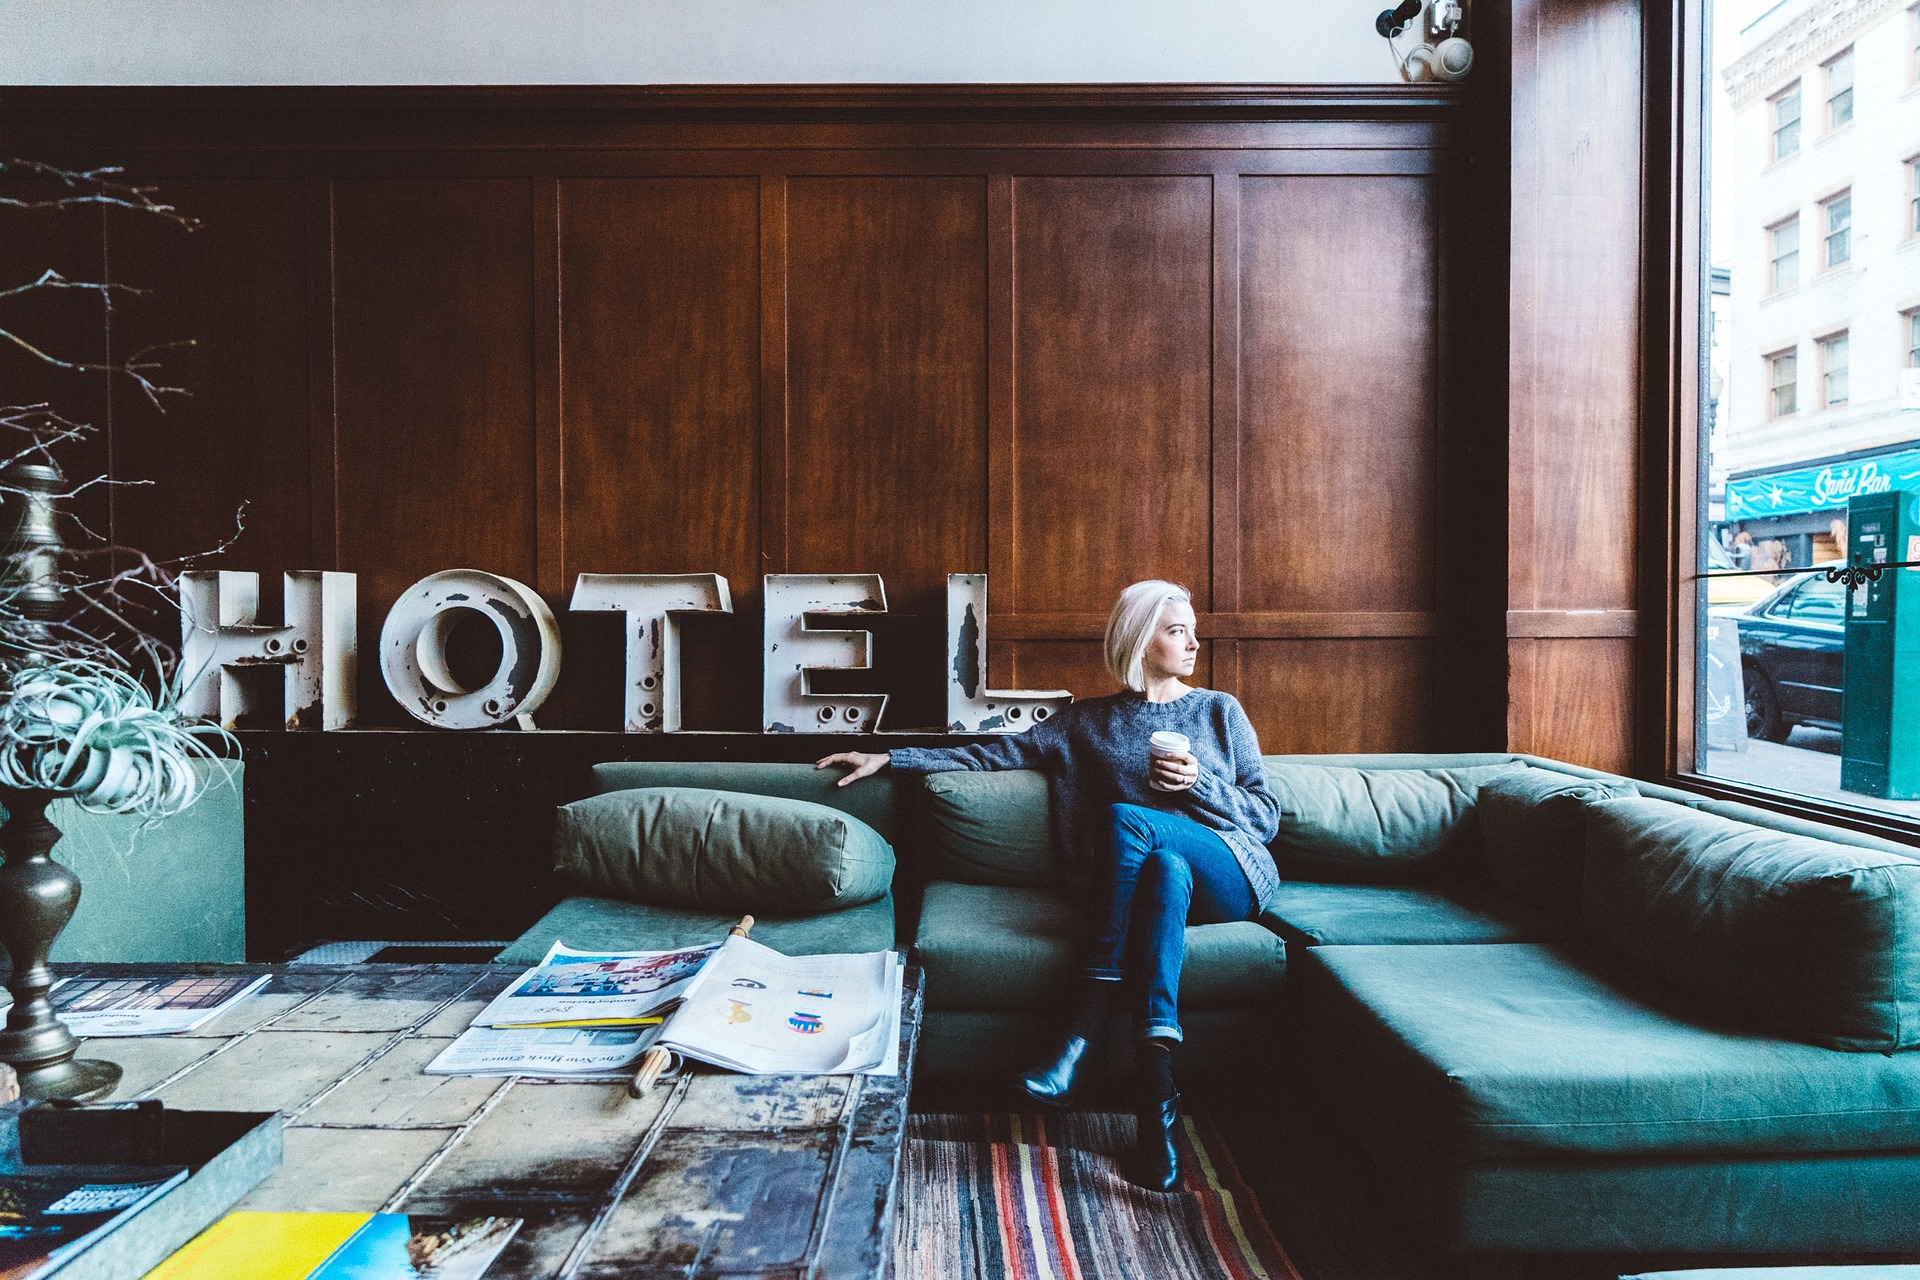 Hotels are an integral part of travel, so make sure your hotel keeps an eye on these top hotel trends to attract guests.